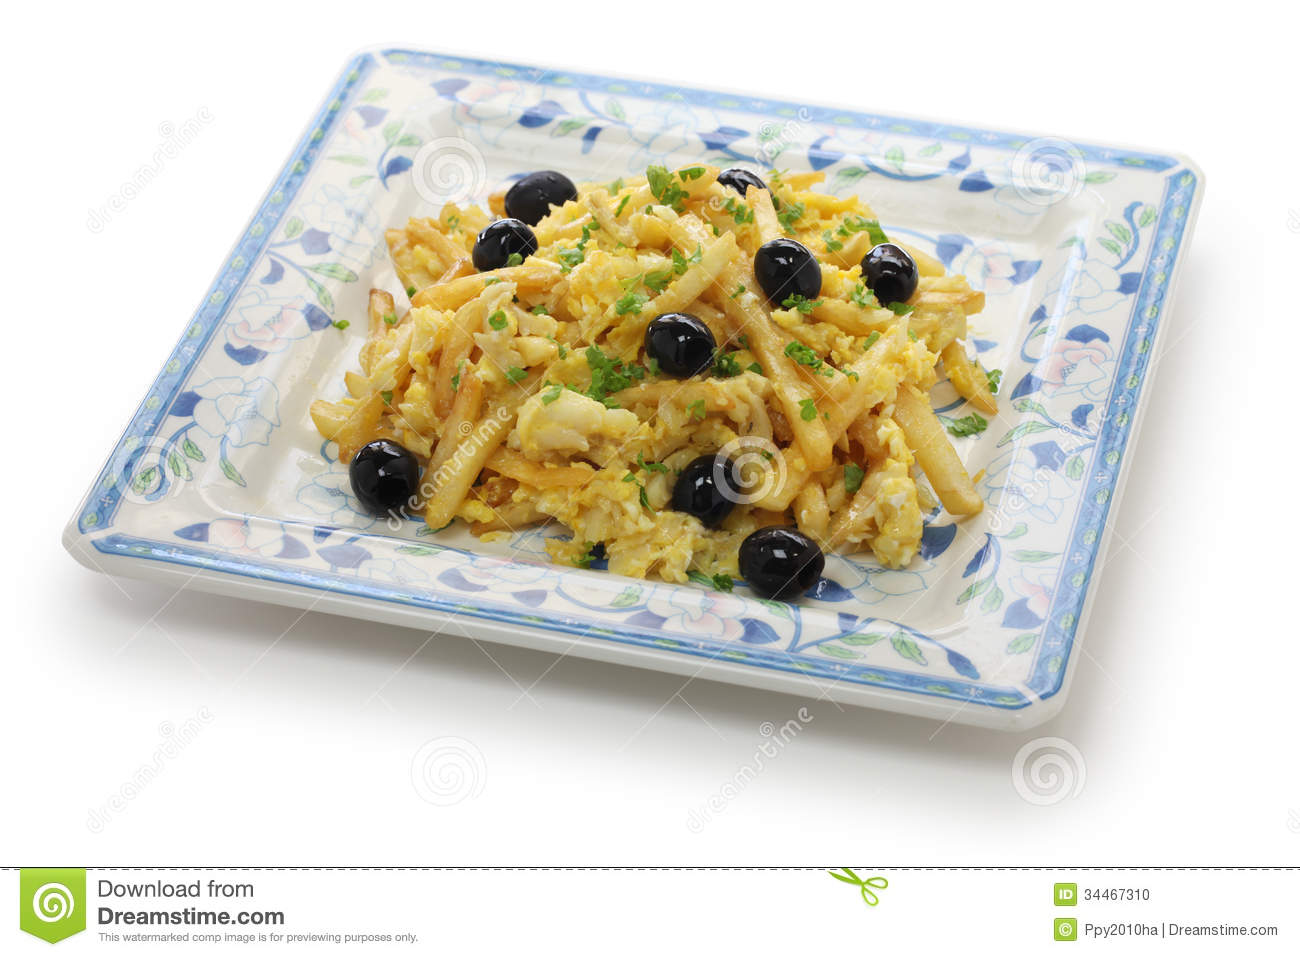 Bacalhau soutiens gorge cuisine portugaise photo stock for Cuisine portugaise